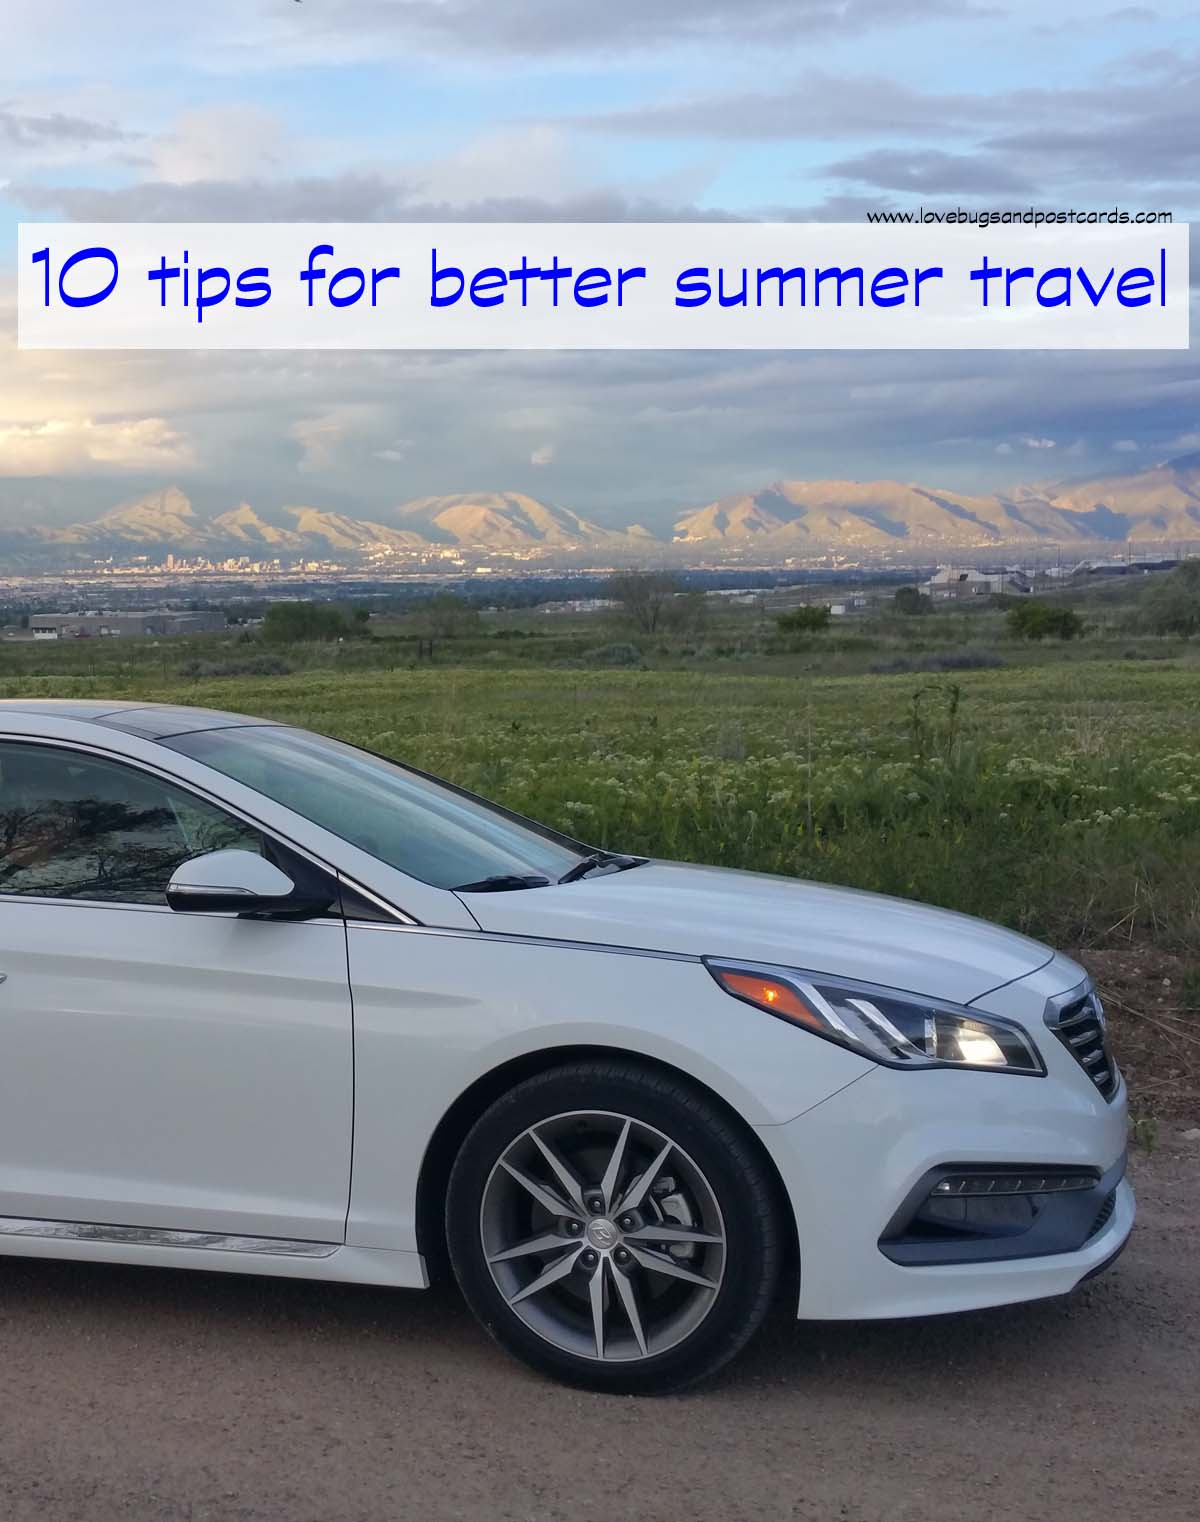 10 Tips for Better Summer Travel